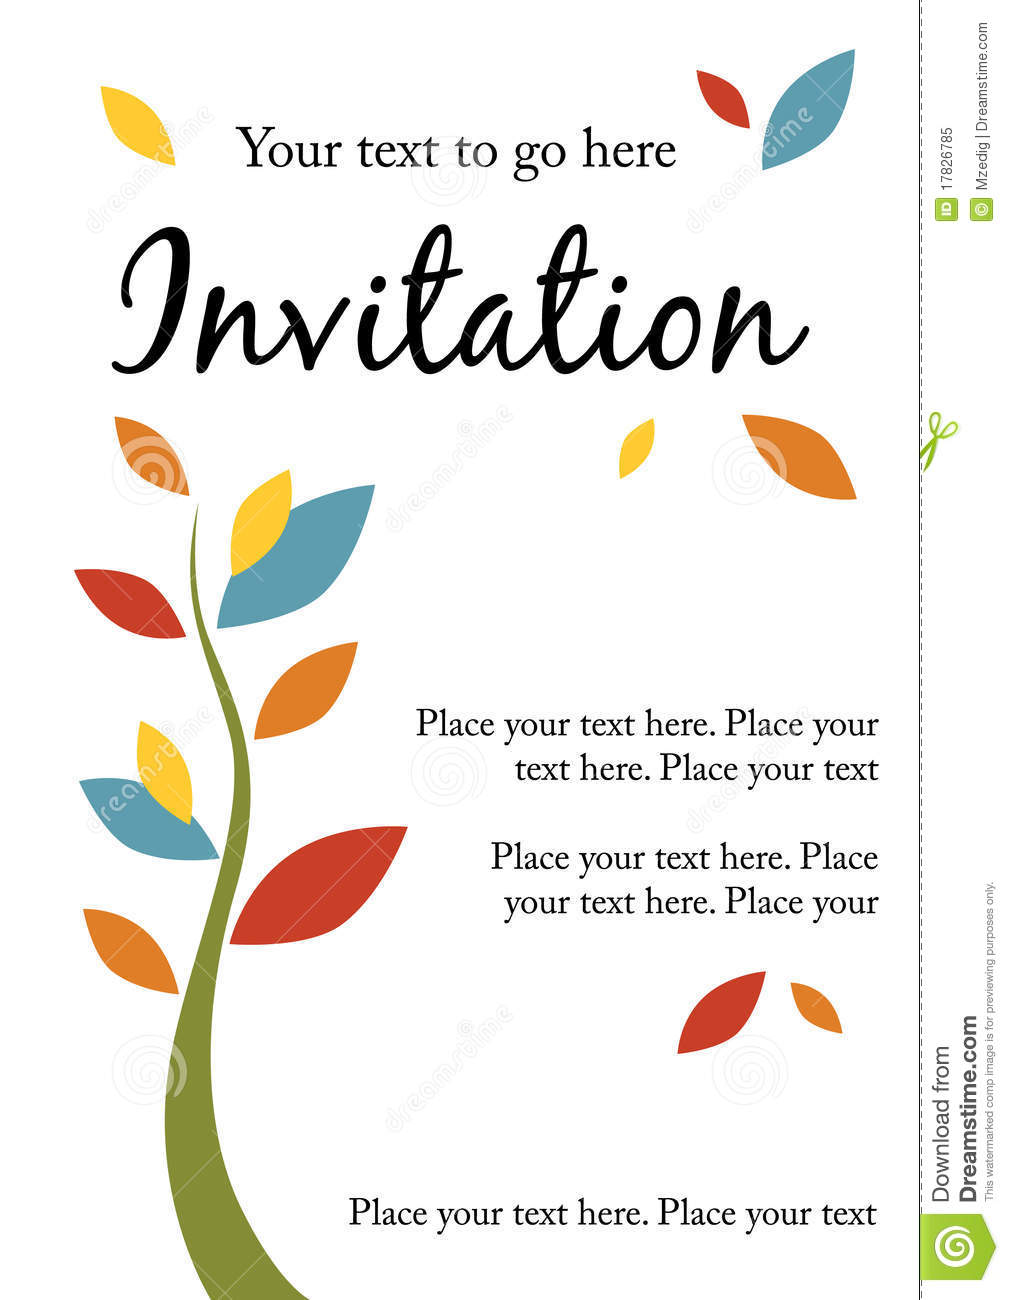 Pretty Party Invitation Royalty Free Photo Image 17826785 – Party Invitation Images